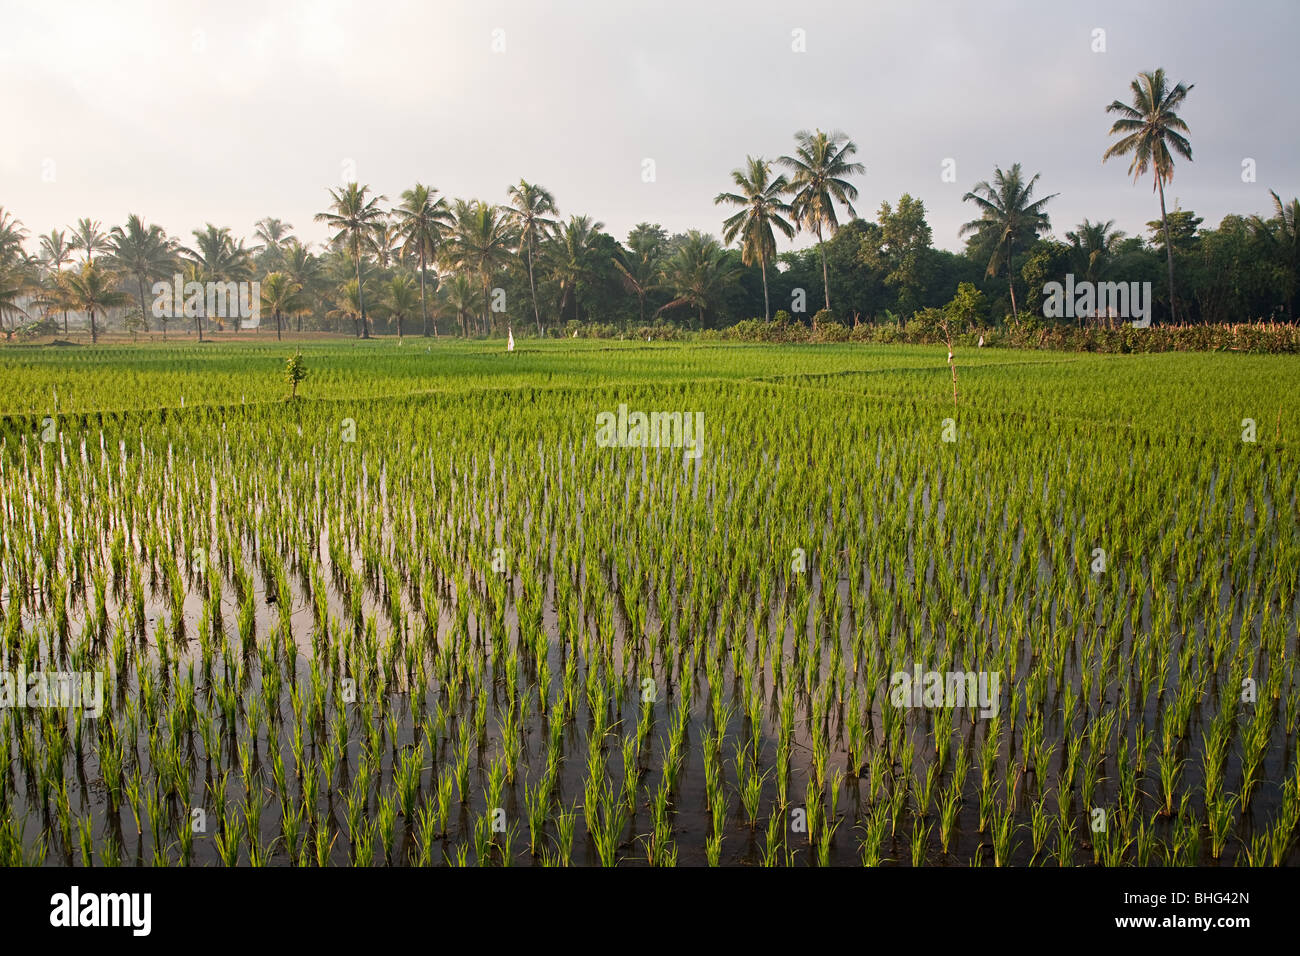 Rice field in lombok indonesia - Stock Image